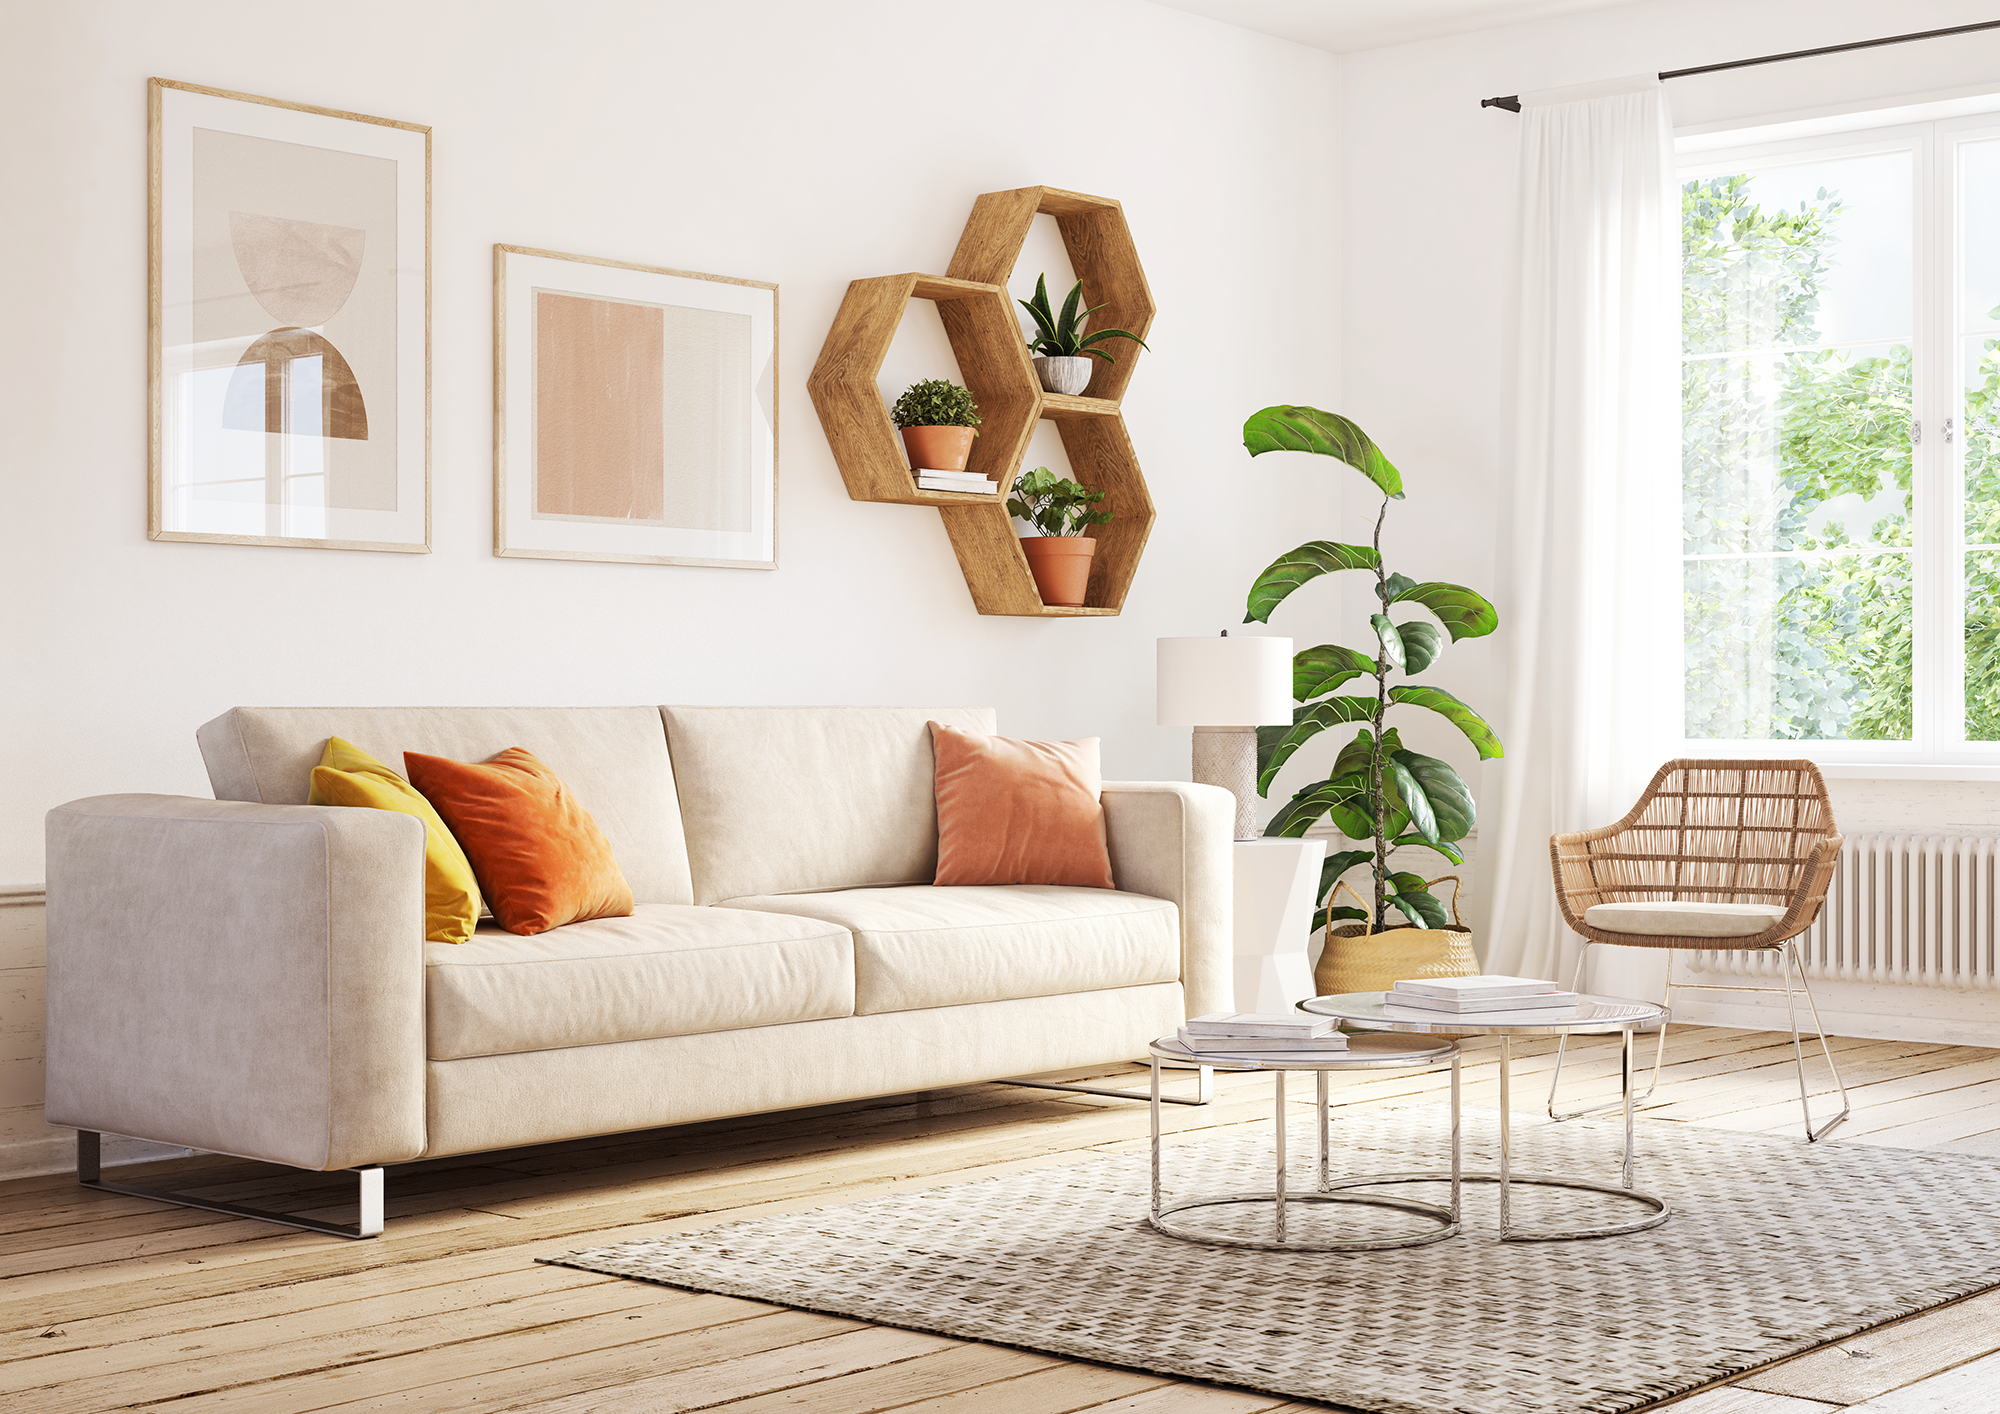 20 Easy Decluttering Tips From Experts How To Declutter A Room